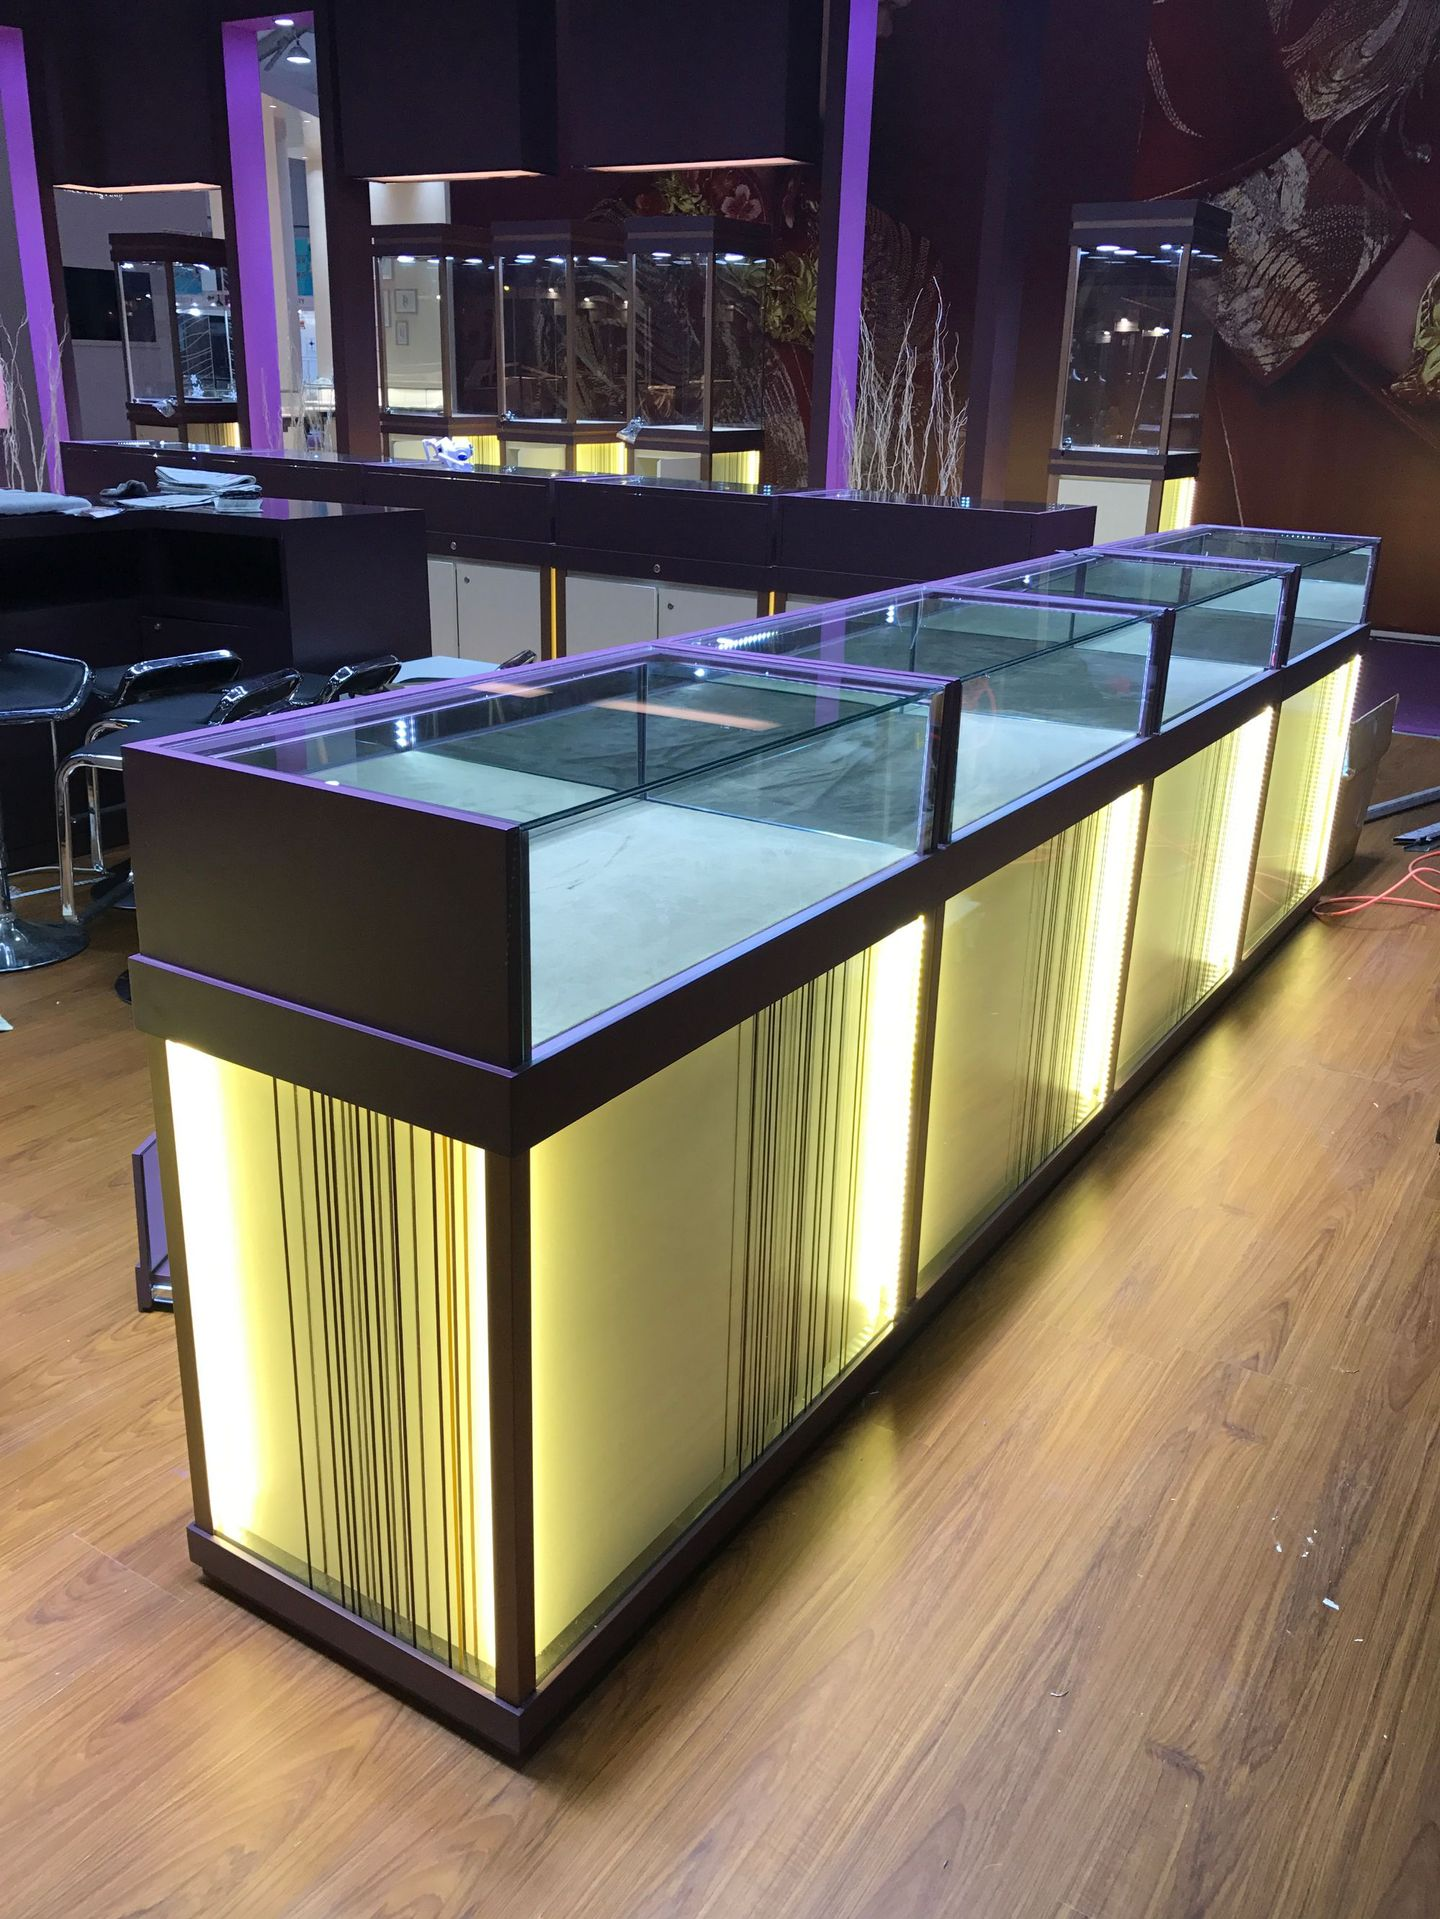 Manufacturers Top Grade Jewelry Showcase Customizable Jewelry Display Cabinet Island Cabinet Jewelry Showcase Round Glass Showca